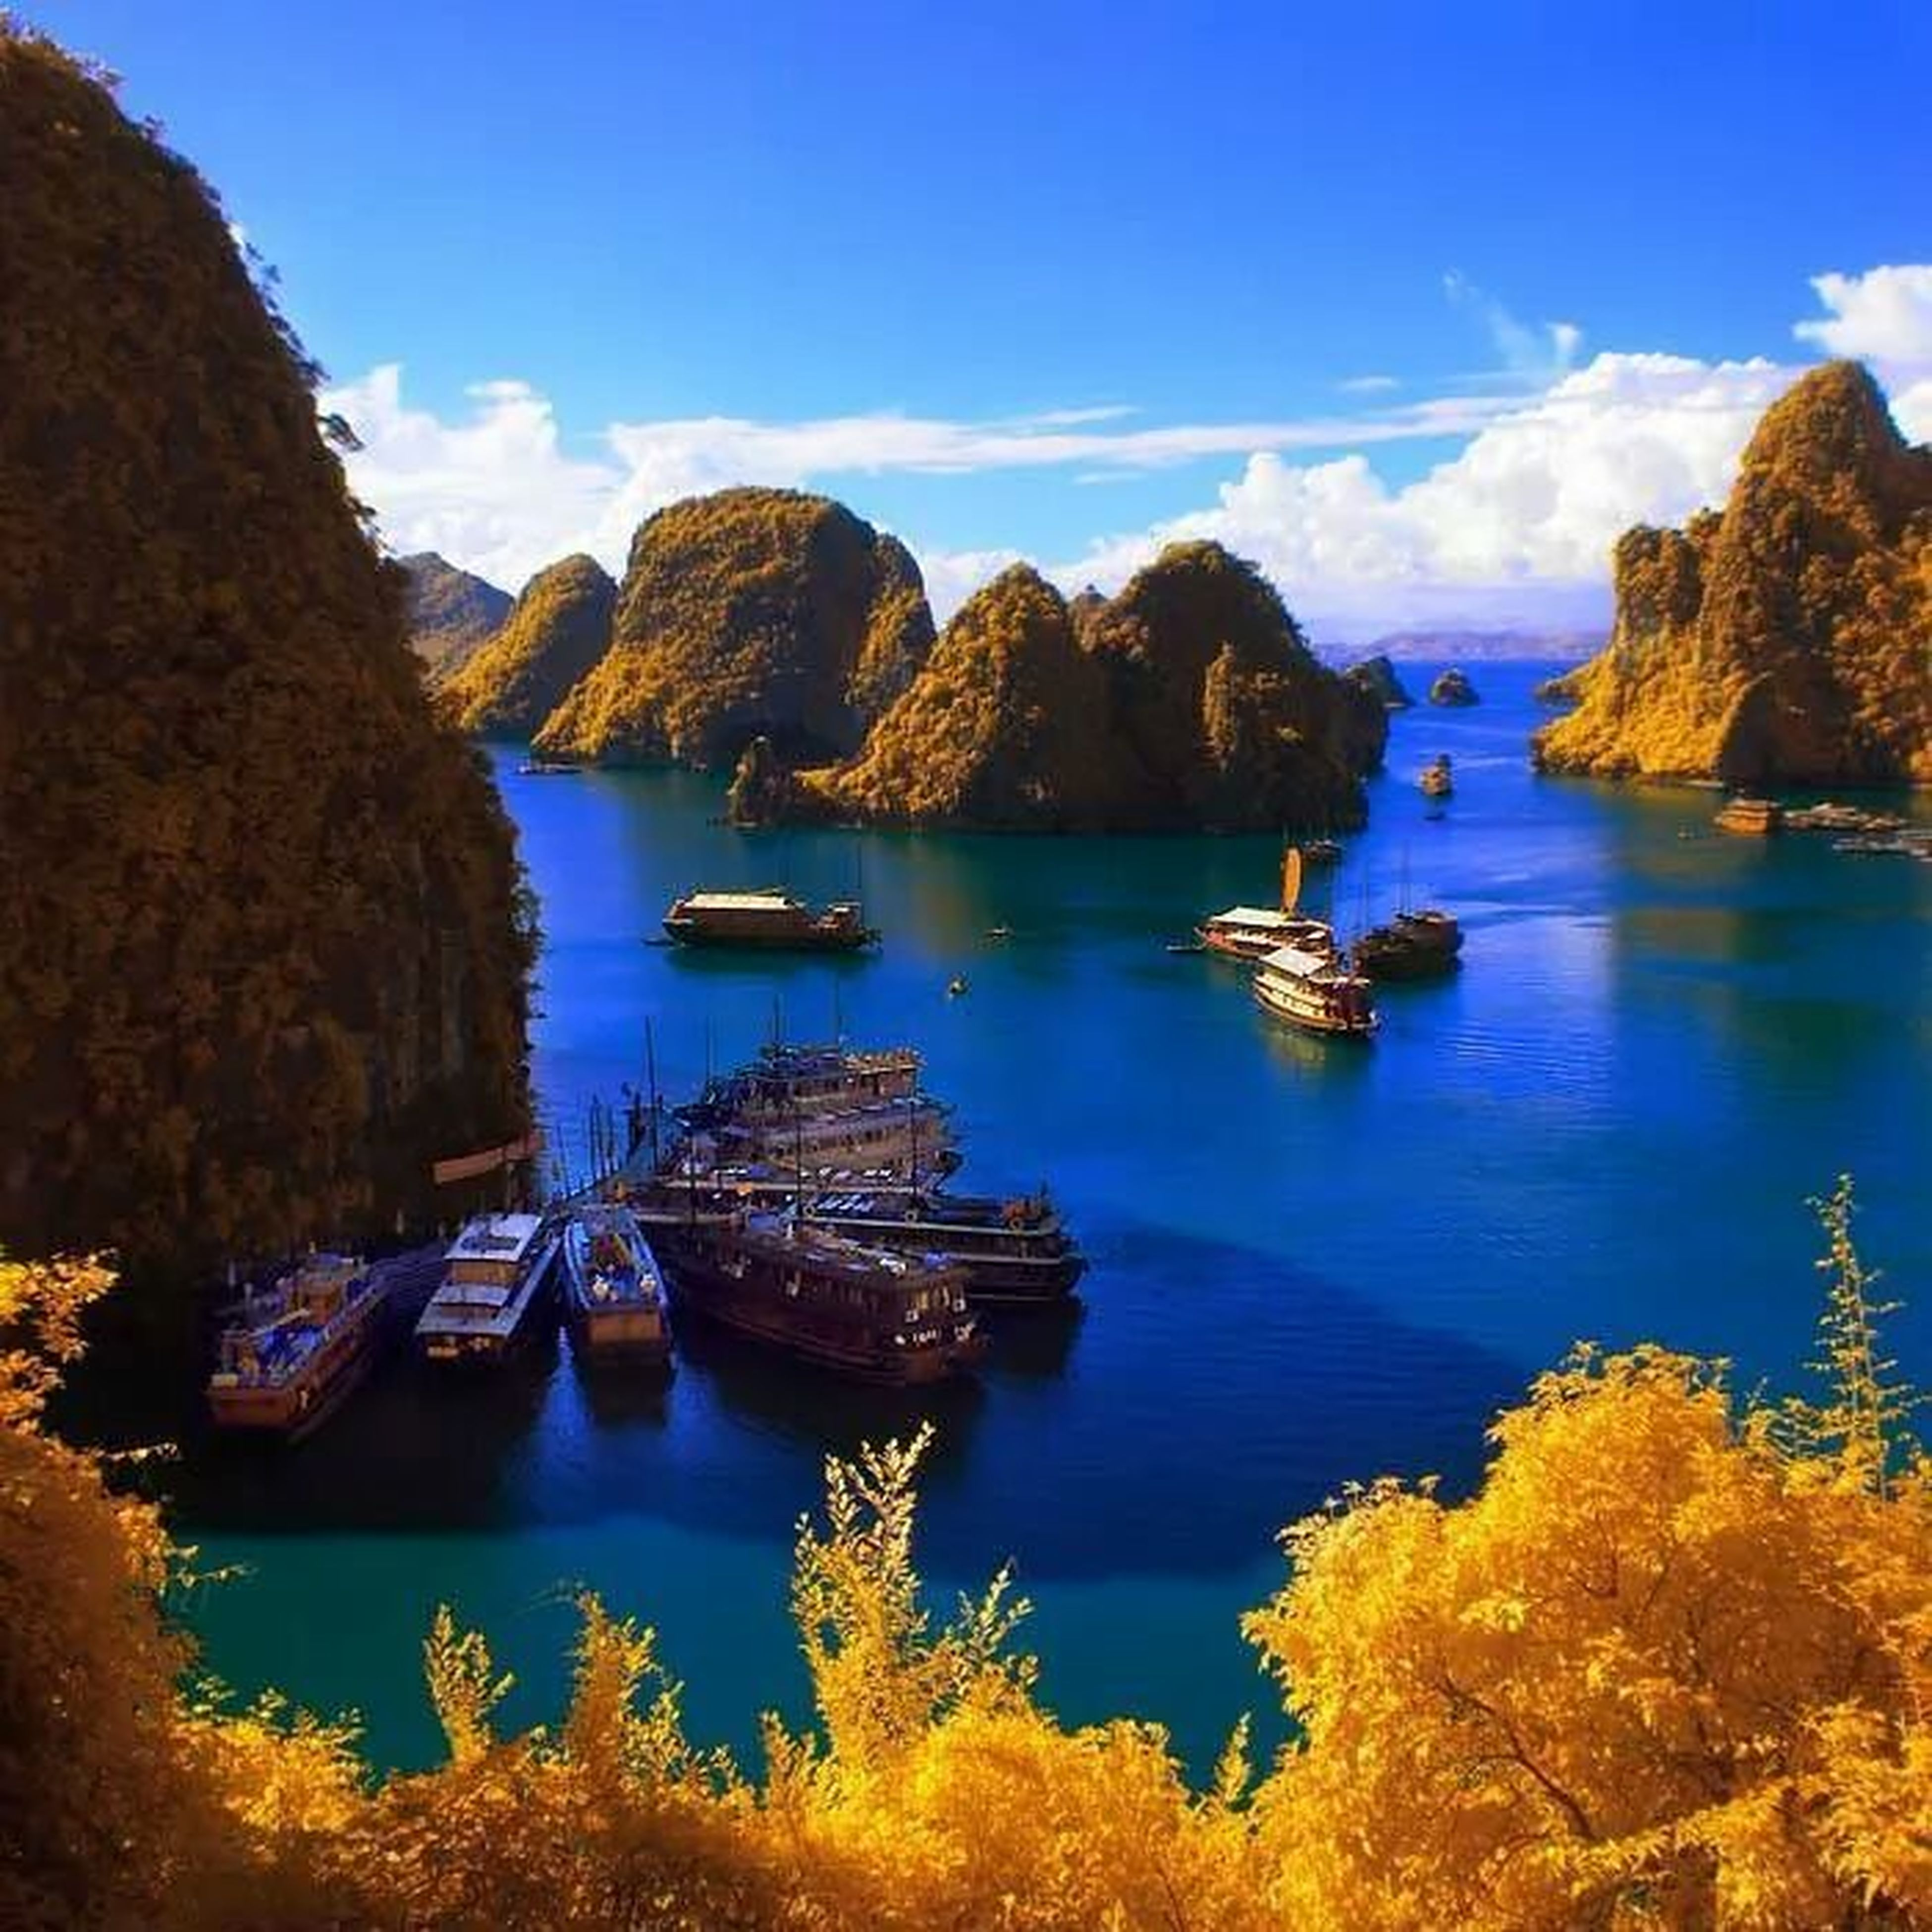 water, nautical vessel, transportation, boat, mode of transport, tranquil scene, tranquility, scenics, sea, sky, moored, blue, beauty in nature, mountain, rock formation, nature, rock - object, tree, idyllic, travel